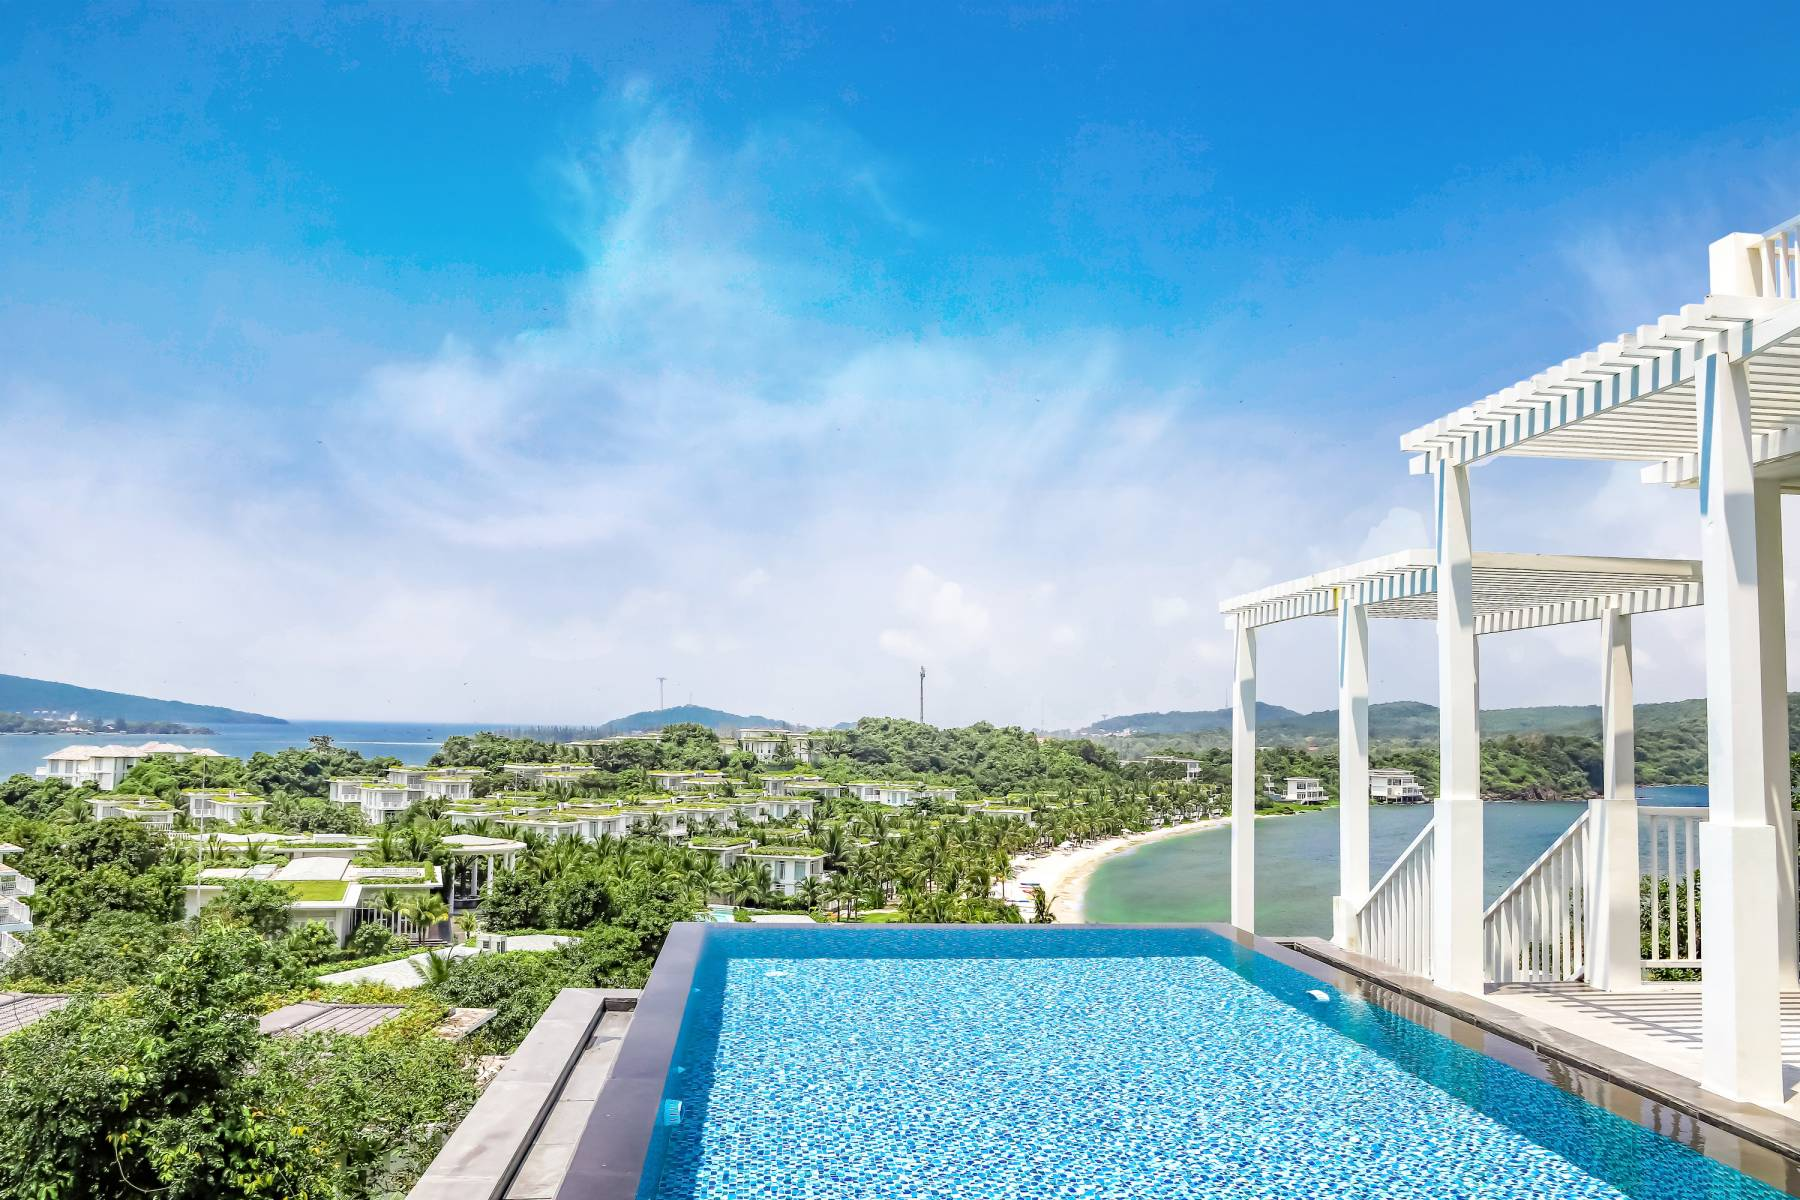 premier-village-phu-quoc-resort-pool-villa-ocean-view-villa-image